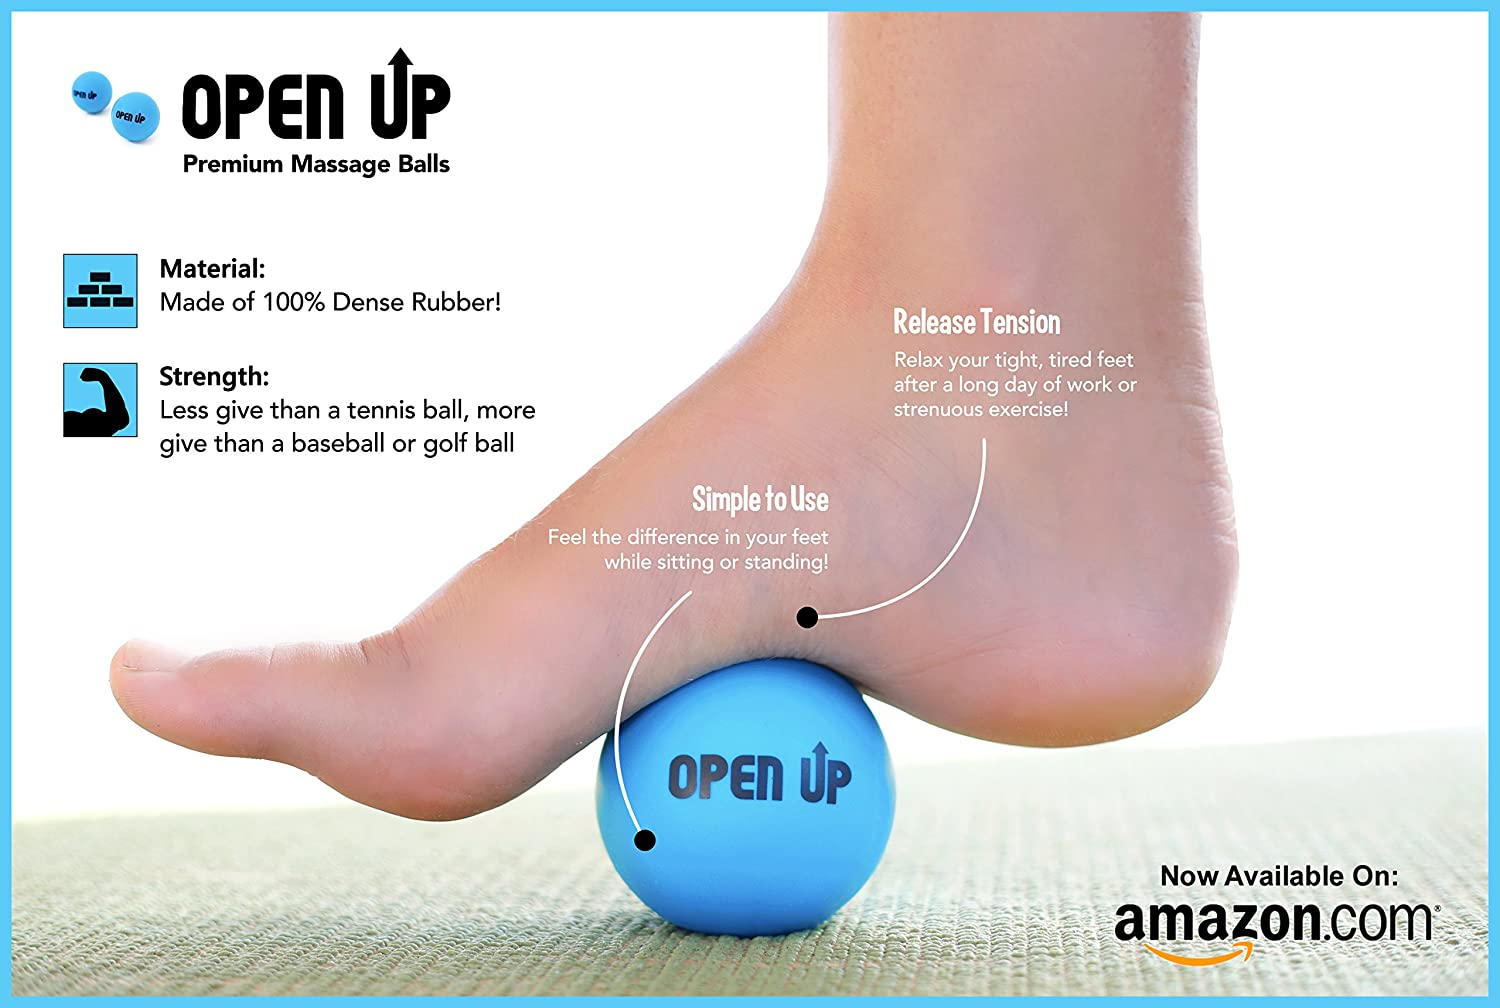 Amazon.com : Massage Balls: The Trigger Point Tool for Tight Muscles ...